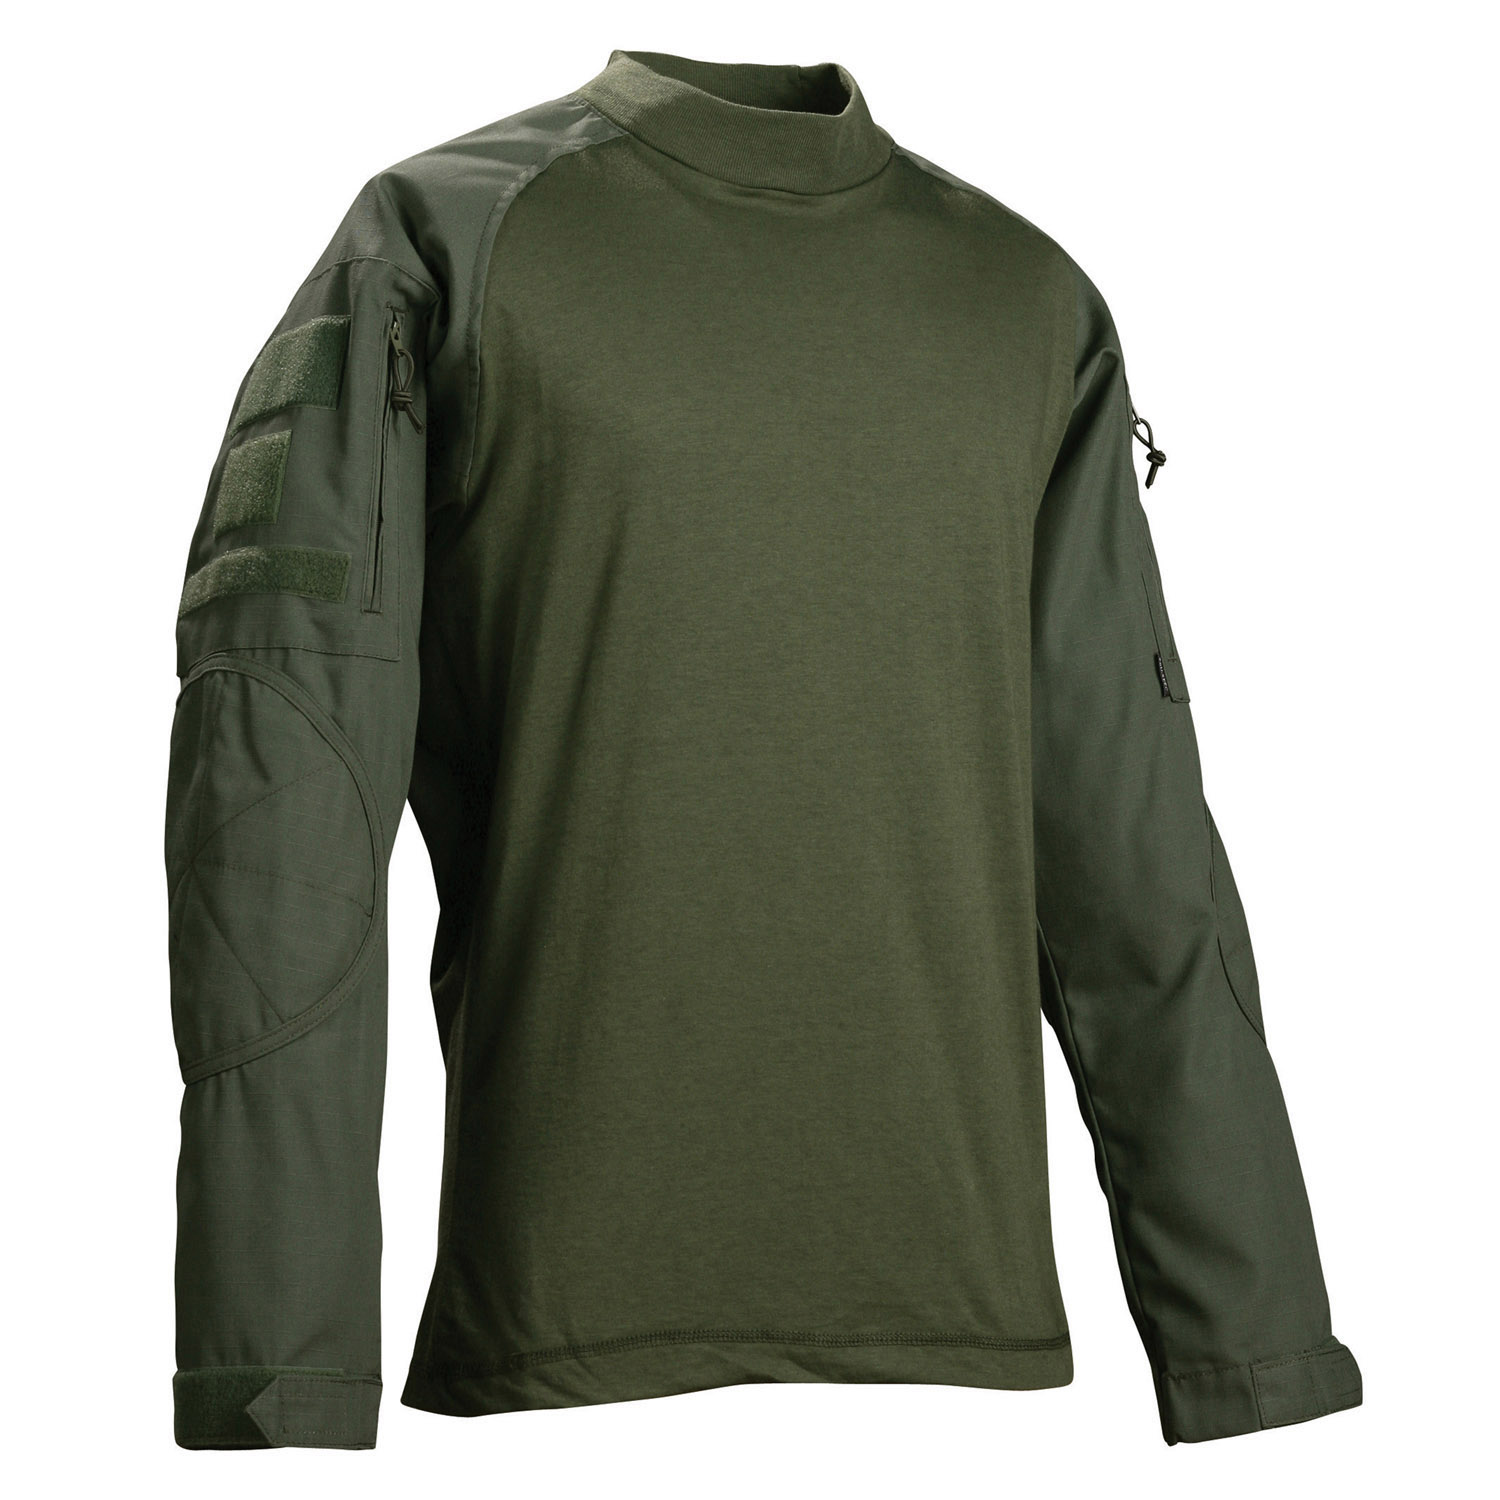 Tru-Spec Poly Cotton Ripstop Combat Shirt